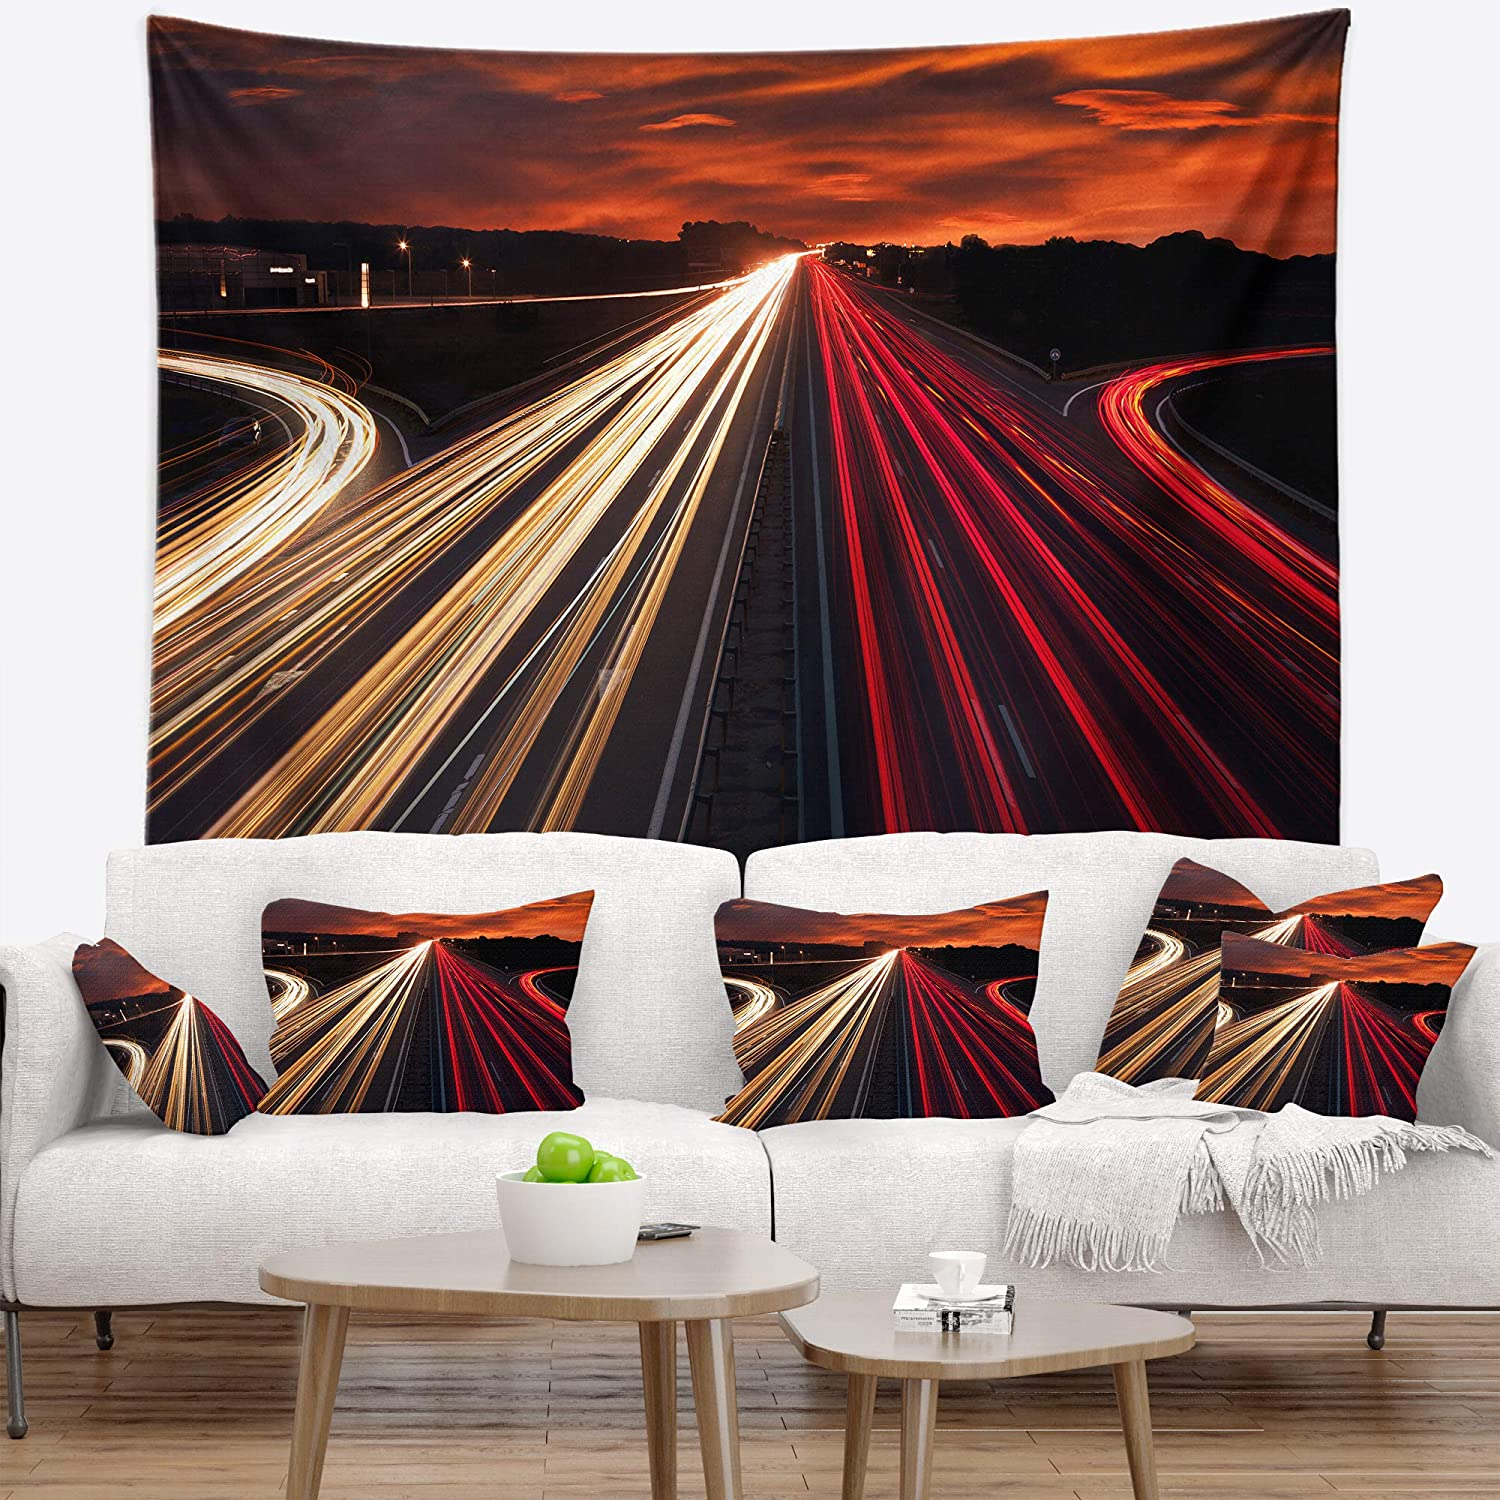 39 in Designart TAP8268-39-32  Speed Traffic Trails Cityscape Digital Blanket D/écor Art for Home and Office Wall Tapestry Medium in x 32 in